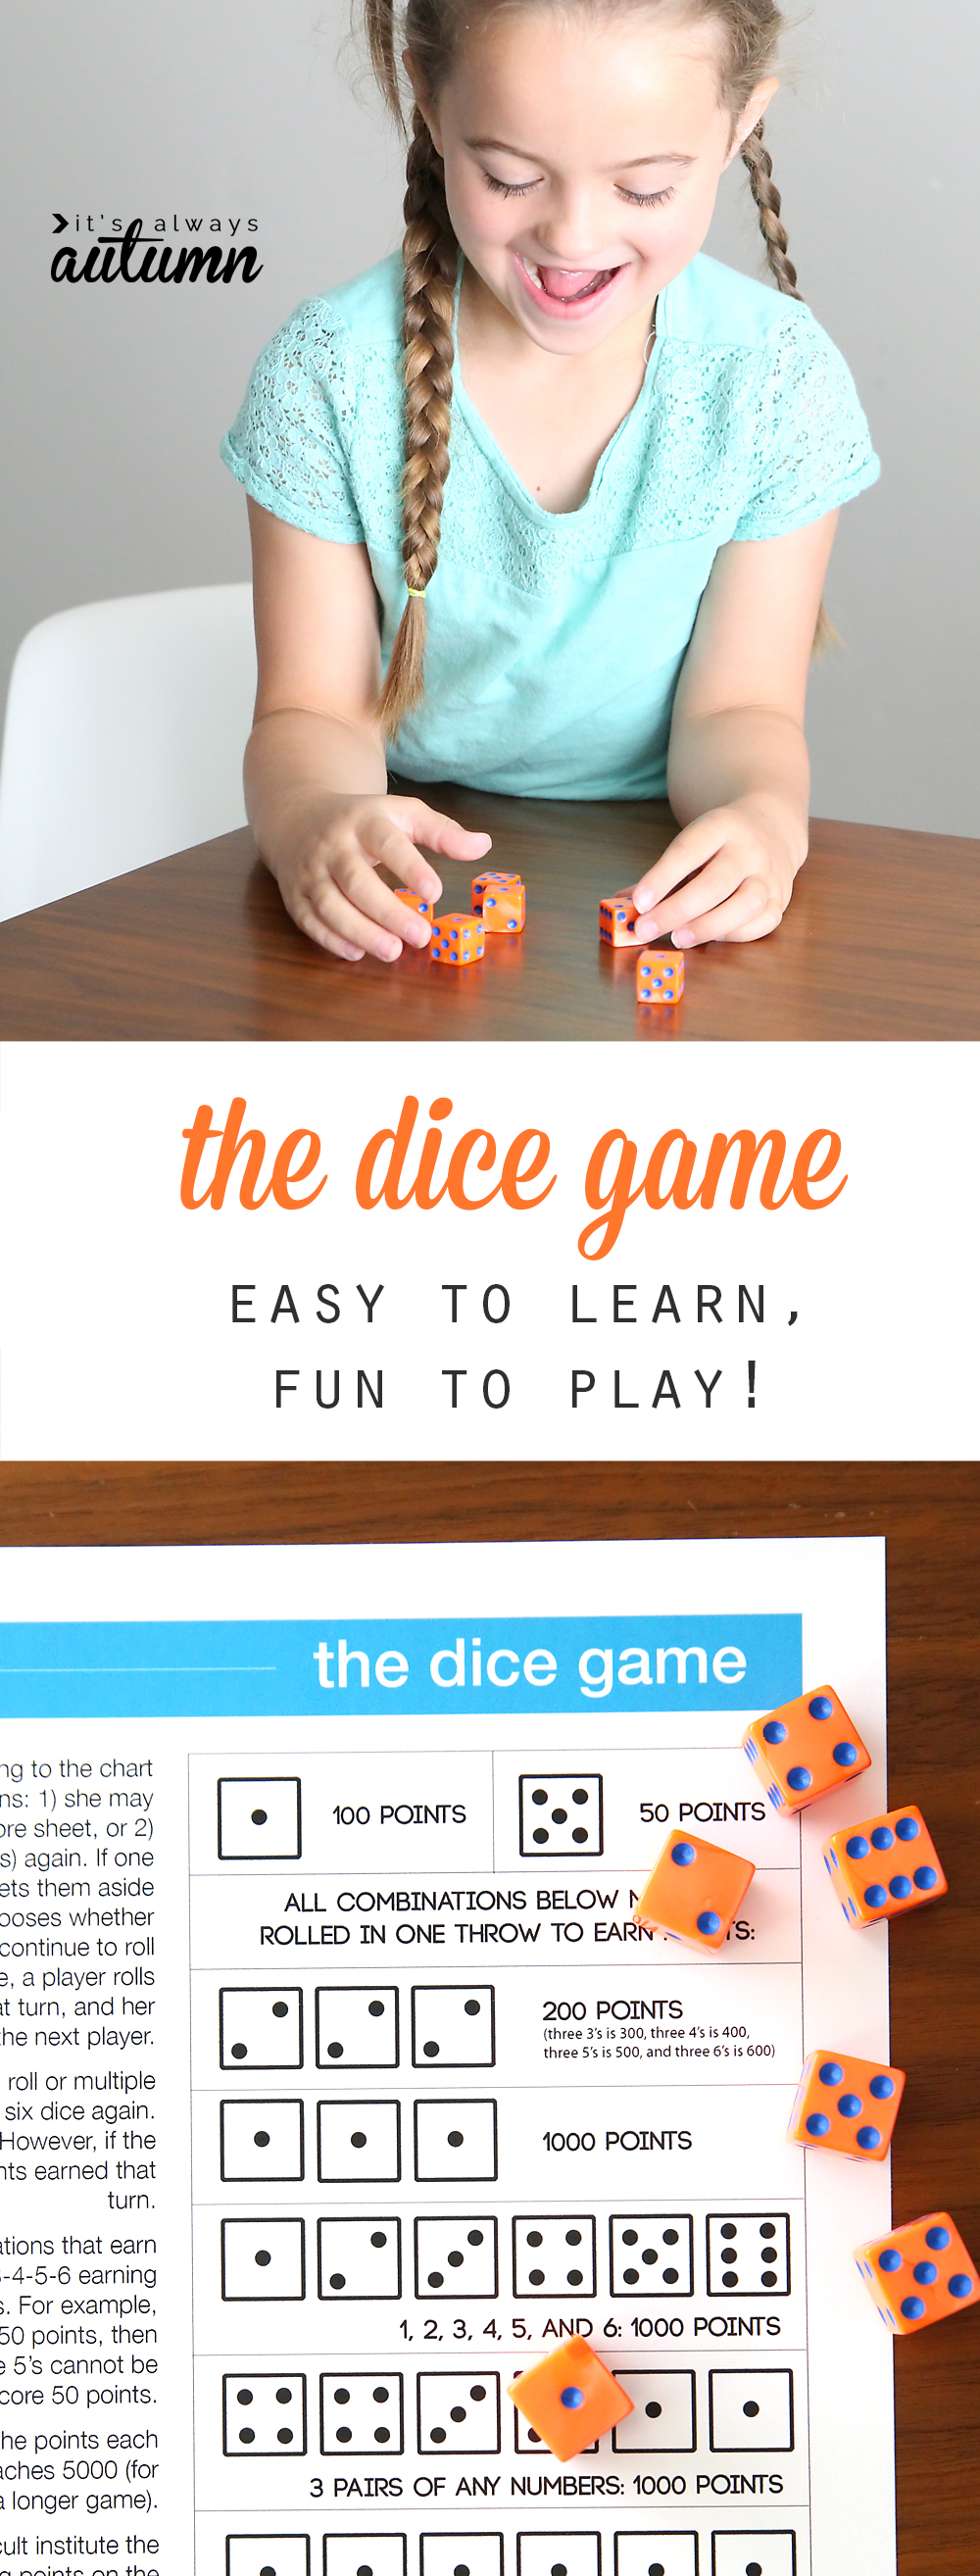 how-to-play-dice-game-easy-kid-children-family-activity-fun-summer-printable-instructions-8.jpg